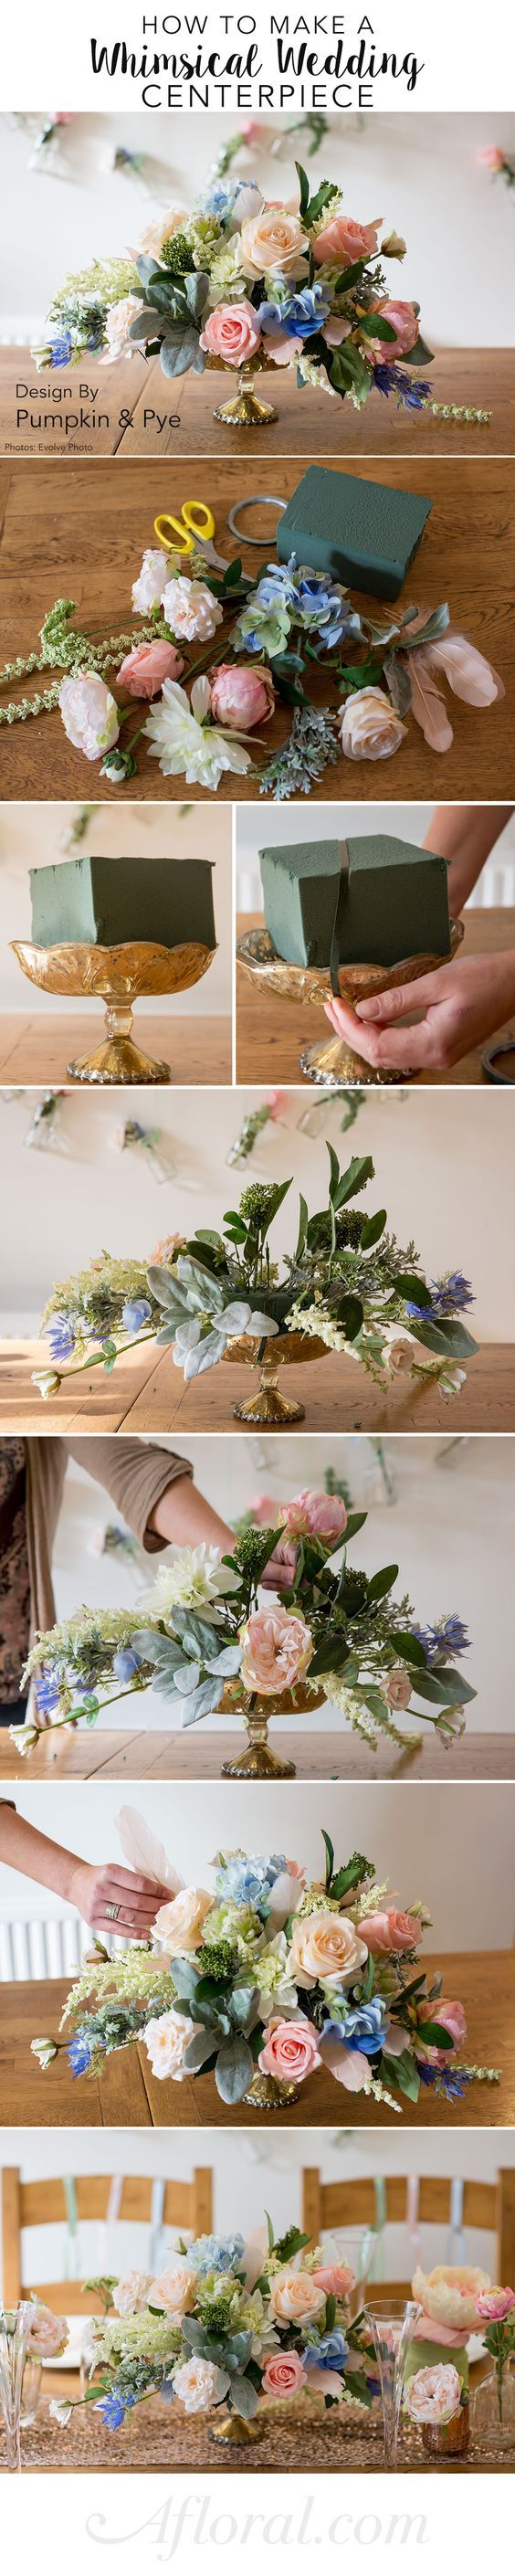 make your own wedding flower centerpieces%0A HowTo DIY Whimsical Wedding Centerpiece